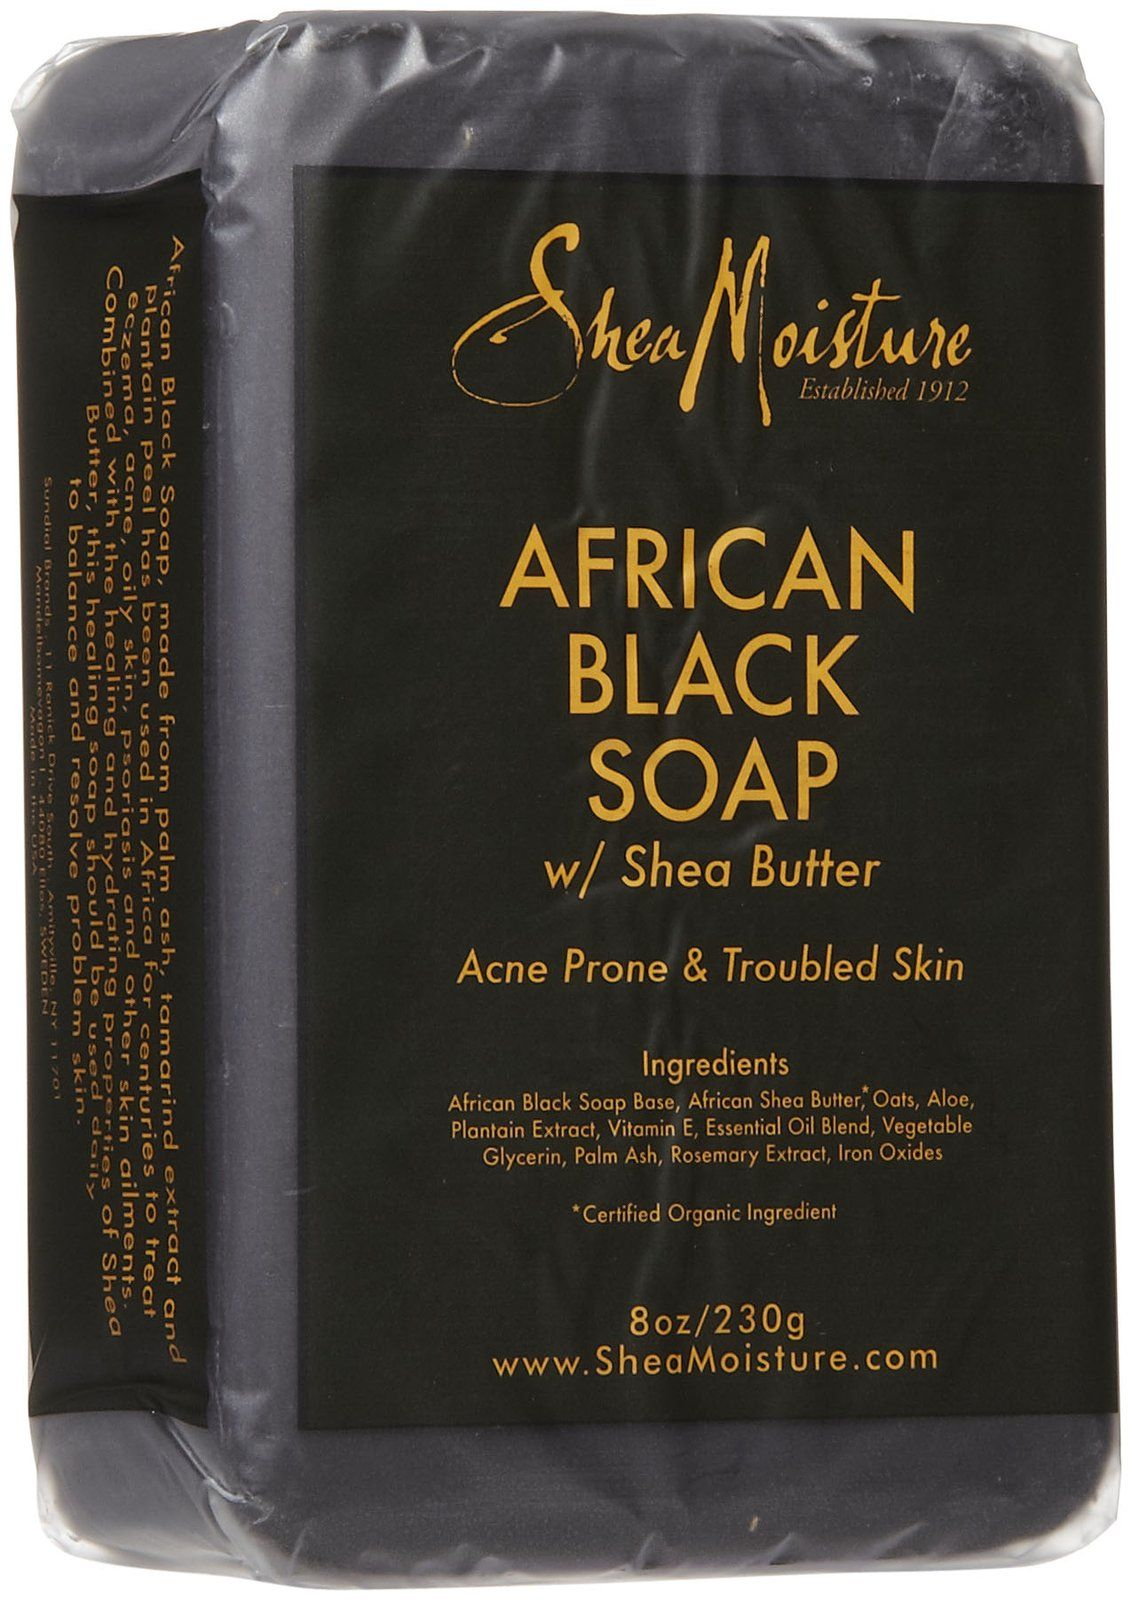 Shea Moisture African Black Soap I Love This Stuff You Actually Feel Clean After You Use It Black Soap Shea Moisture Products African Black Soap